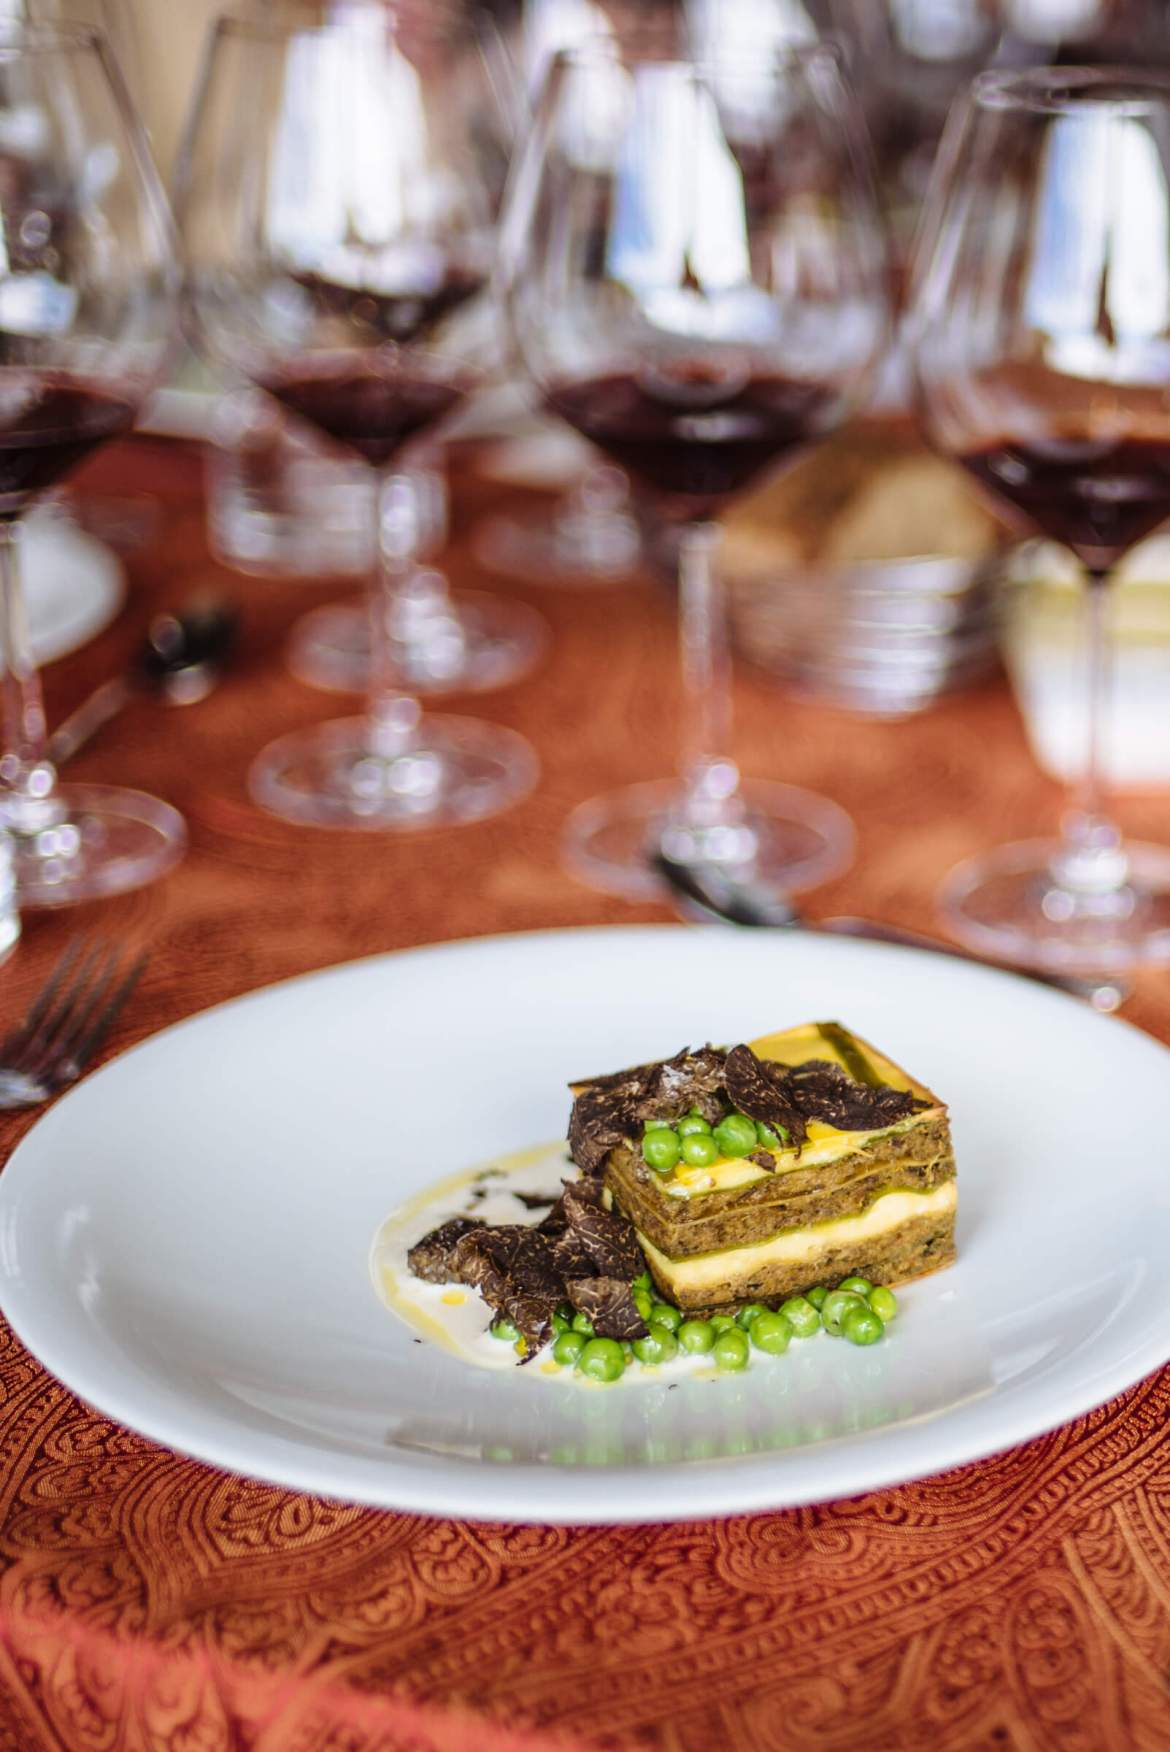 Michael Tusk lamb lasagna at Relais and Chateaux GourmetFest in Carmel - The Taste Edit